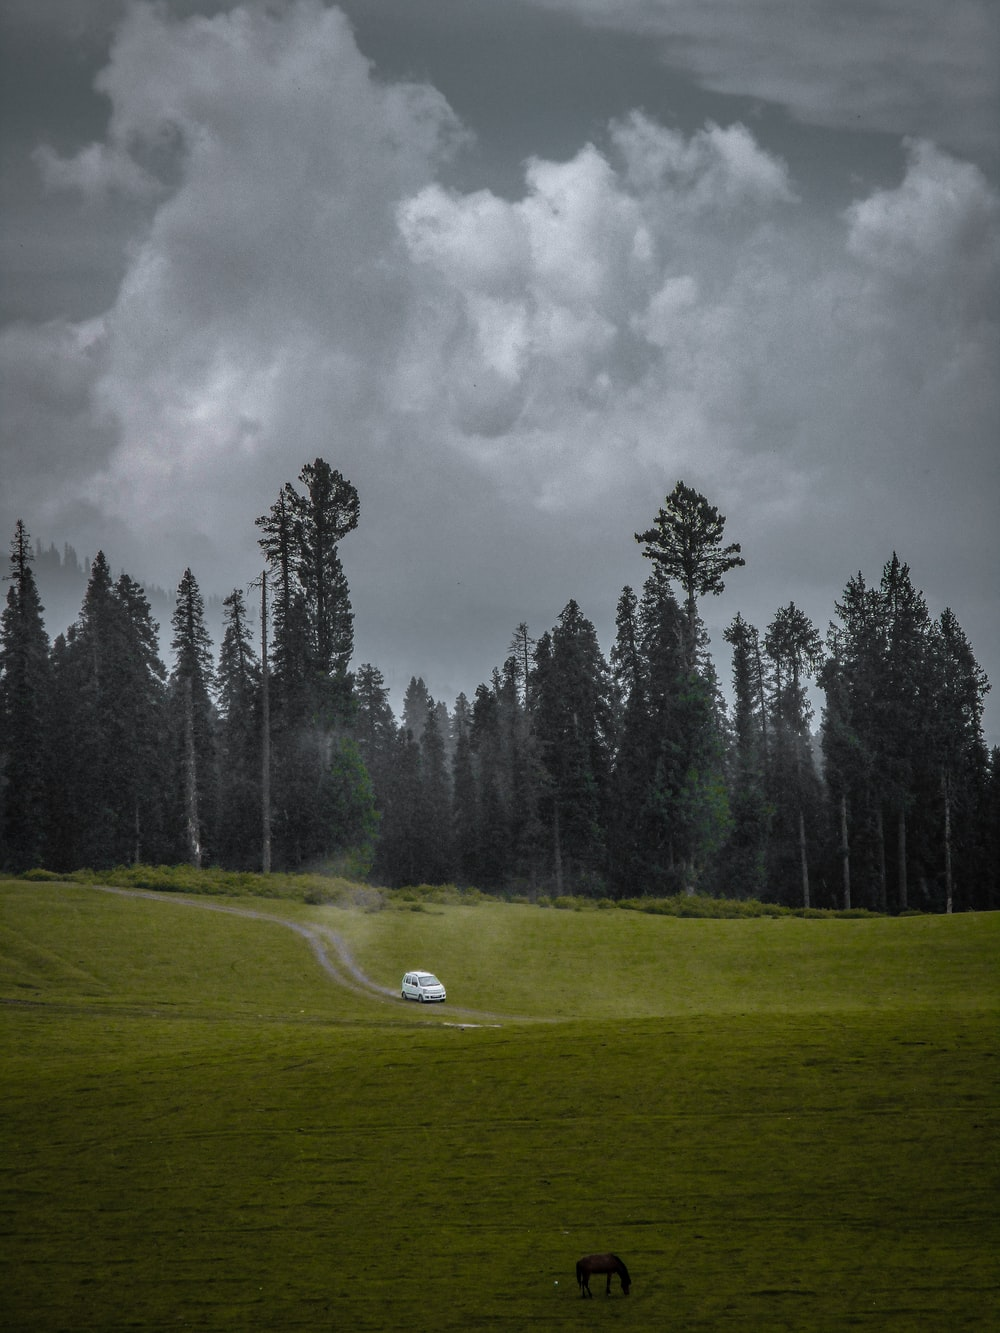 green grass field with trees under gray clouds